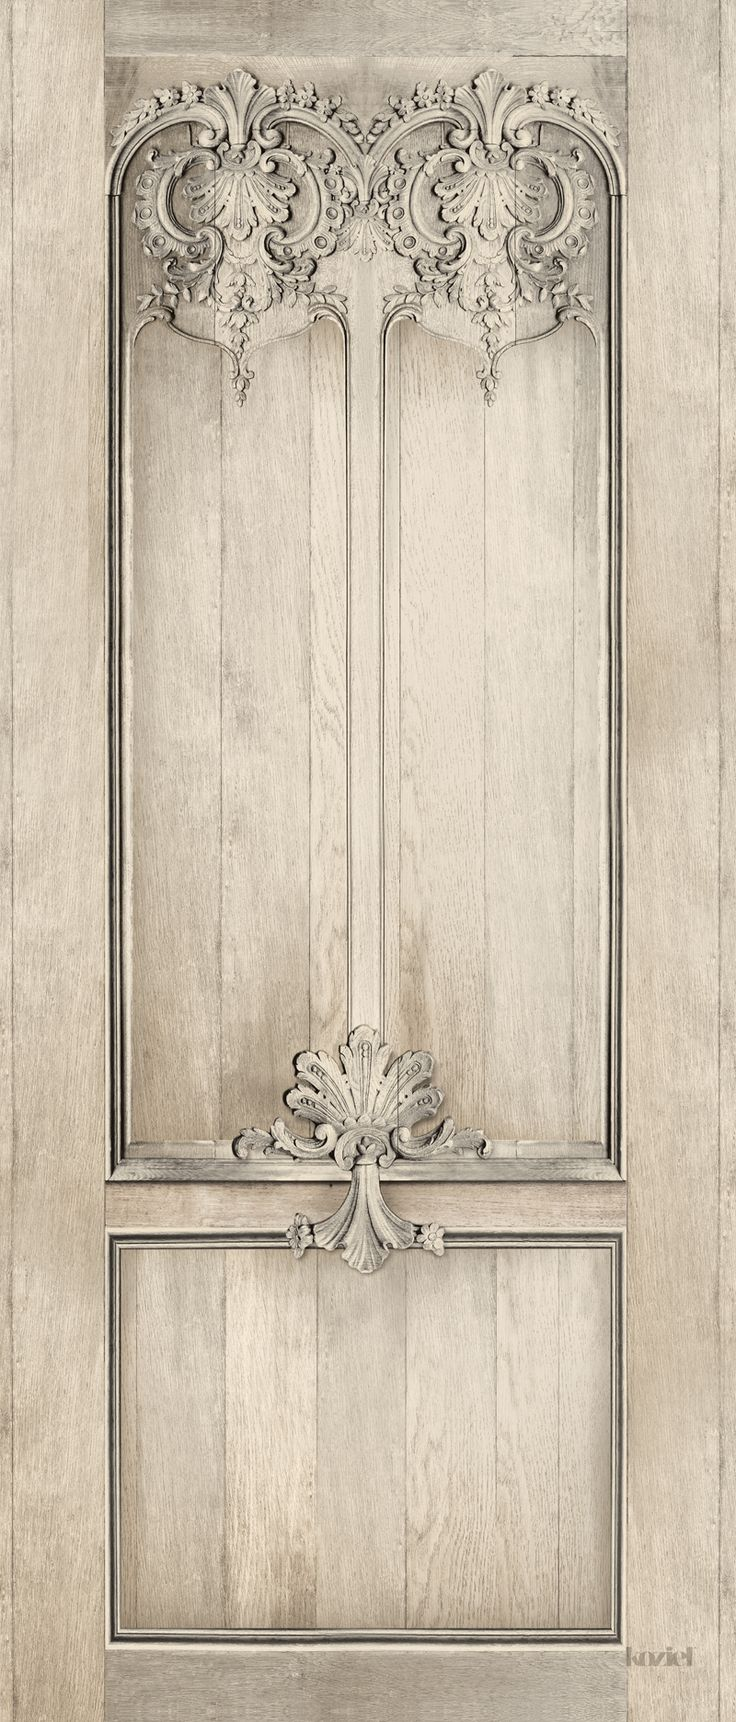 French trompe l oeil wallpaper by christophe koziel